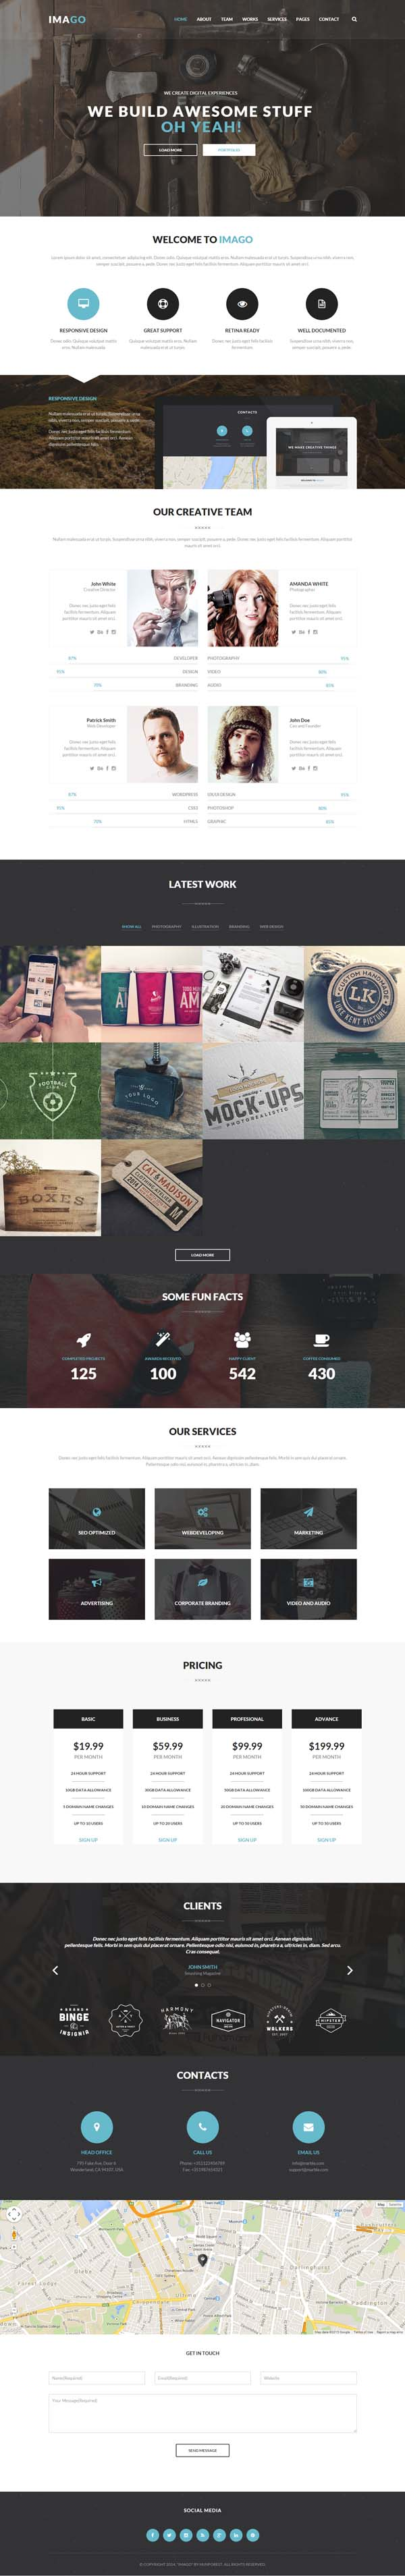 15 New Responsive HTML5 CSS3 Website Templates | Design | Graphic ...